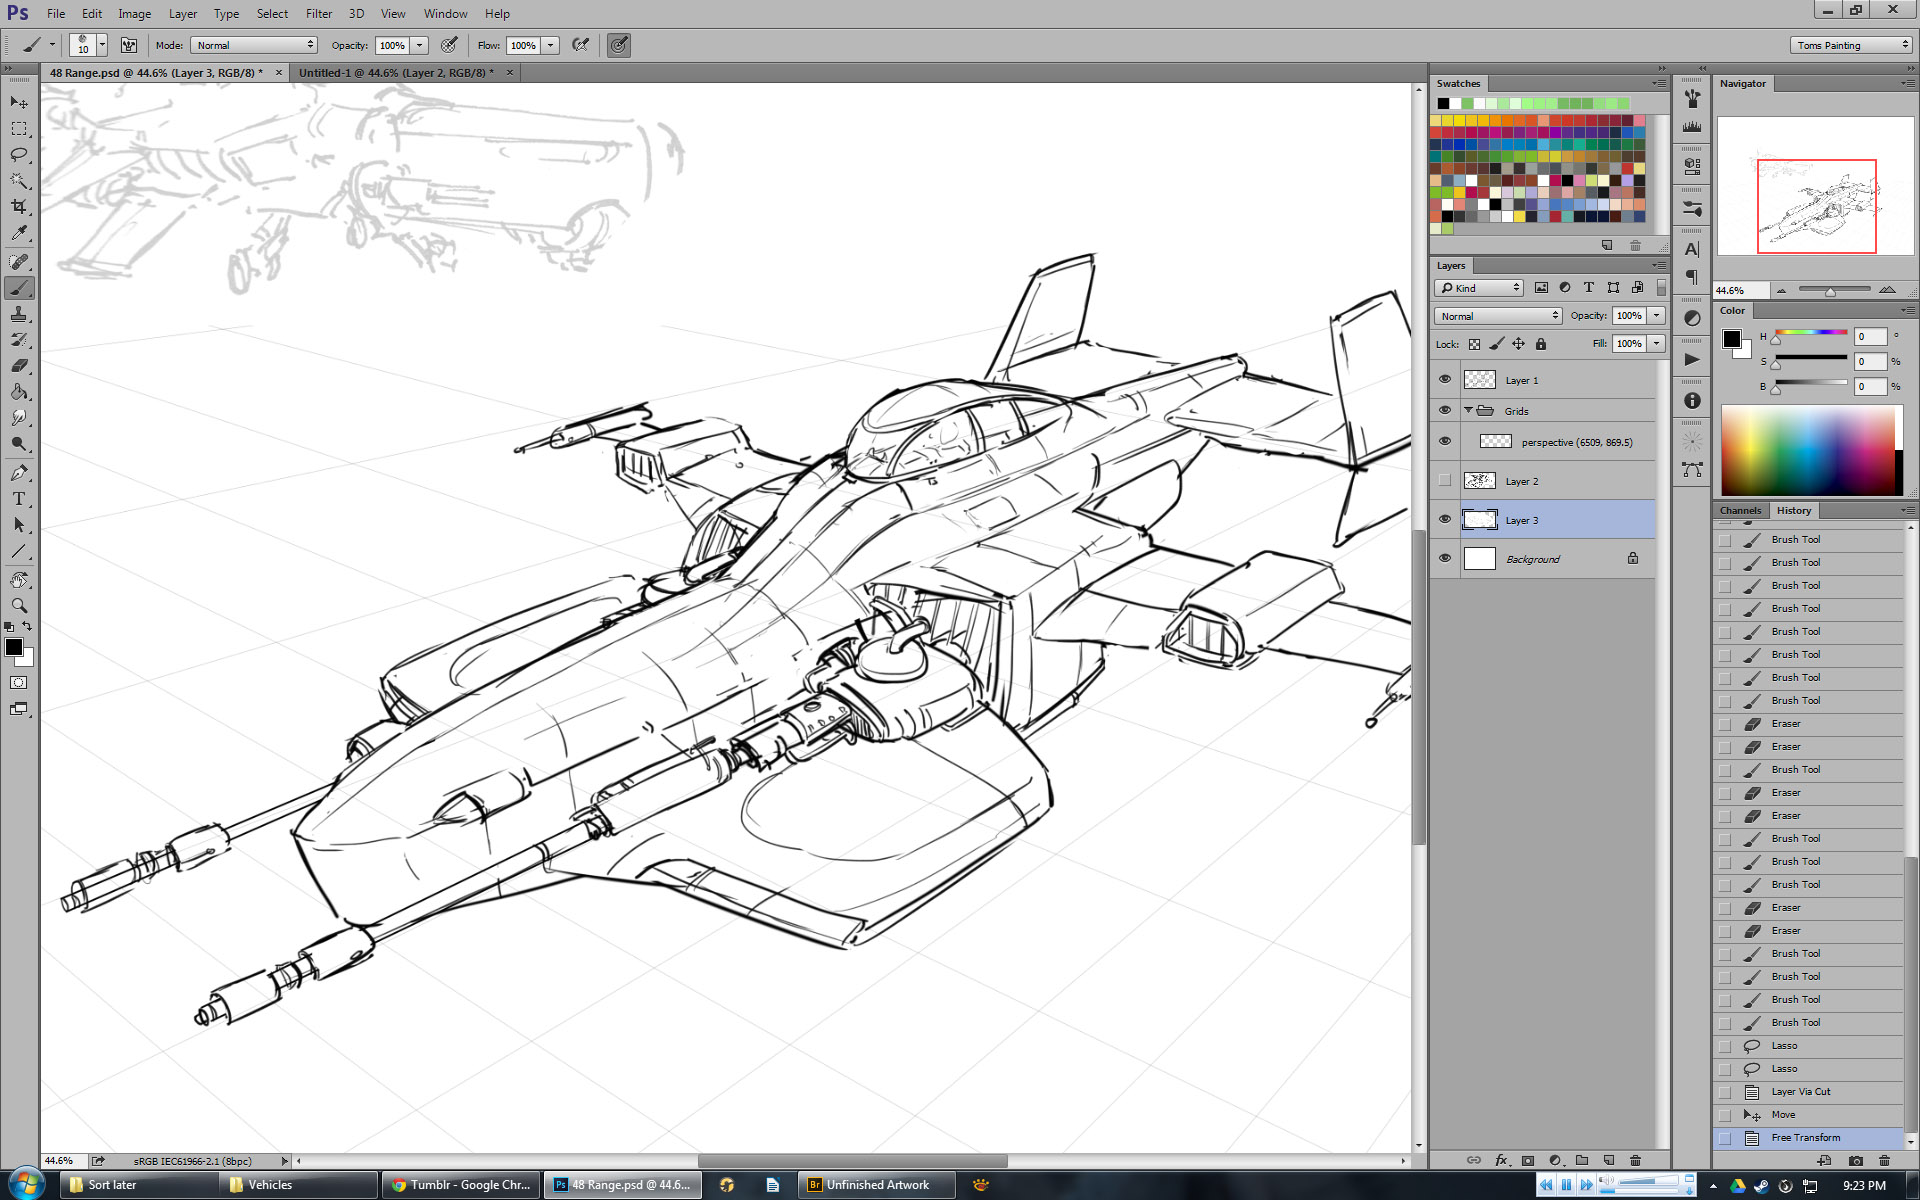 a space jet fighter